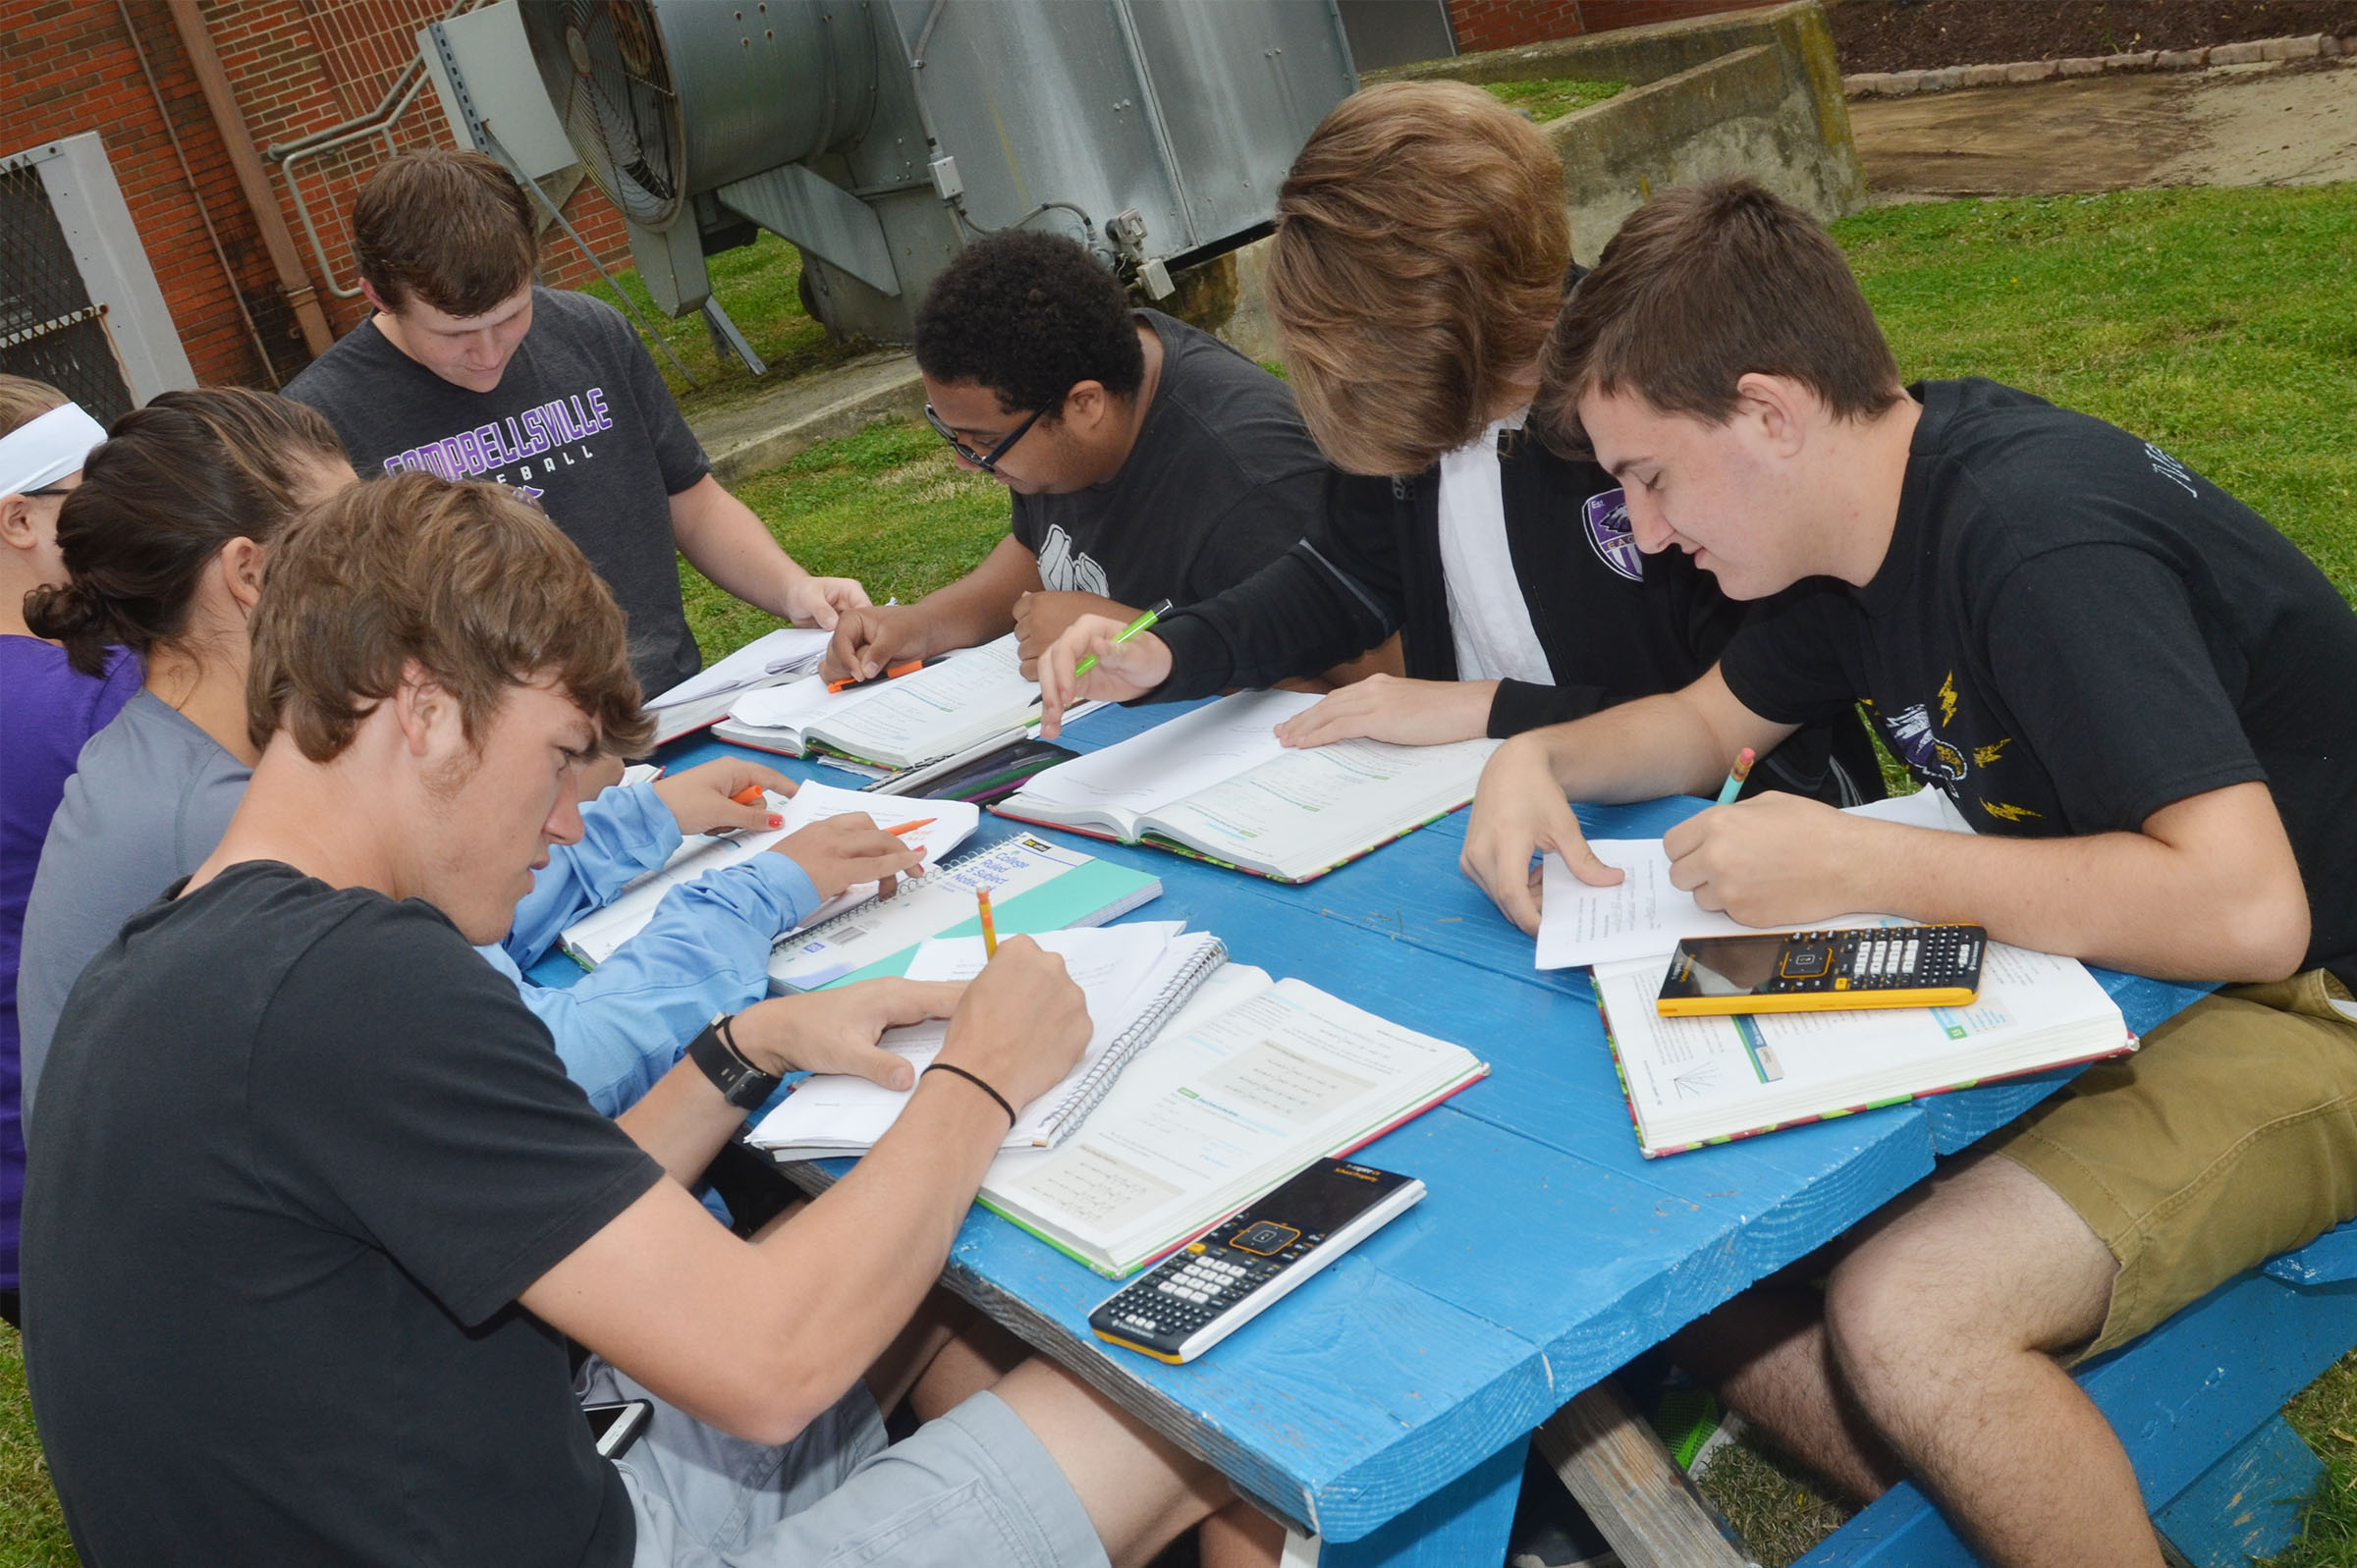 CHS students complete homework while having trigonometry class outside. At left is senior Zack Bottoms and at right is junior Austin Fitzgerald.